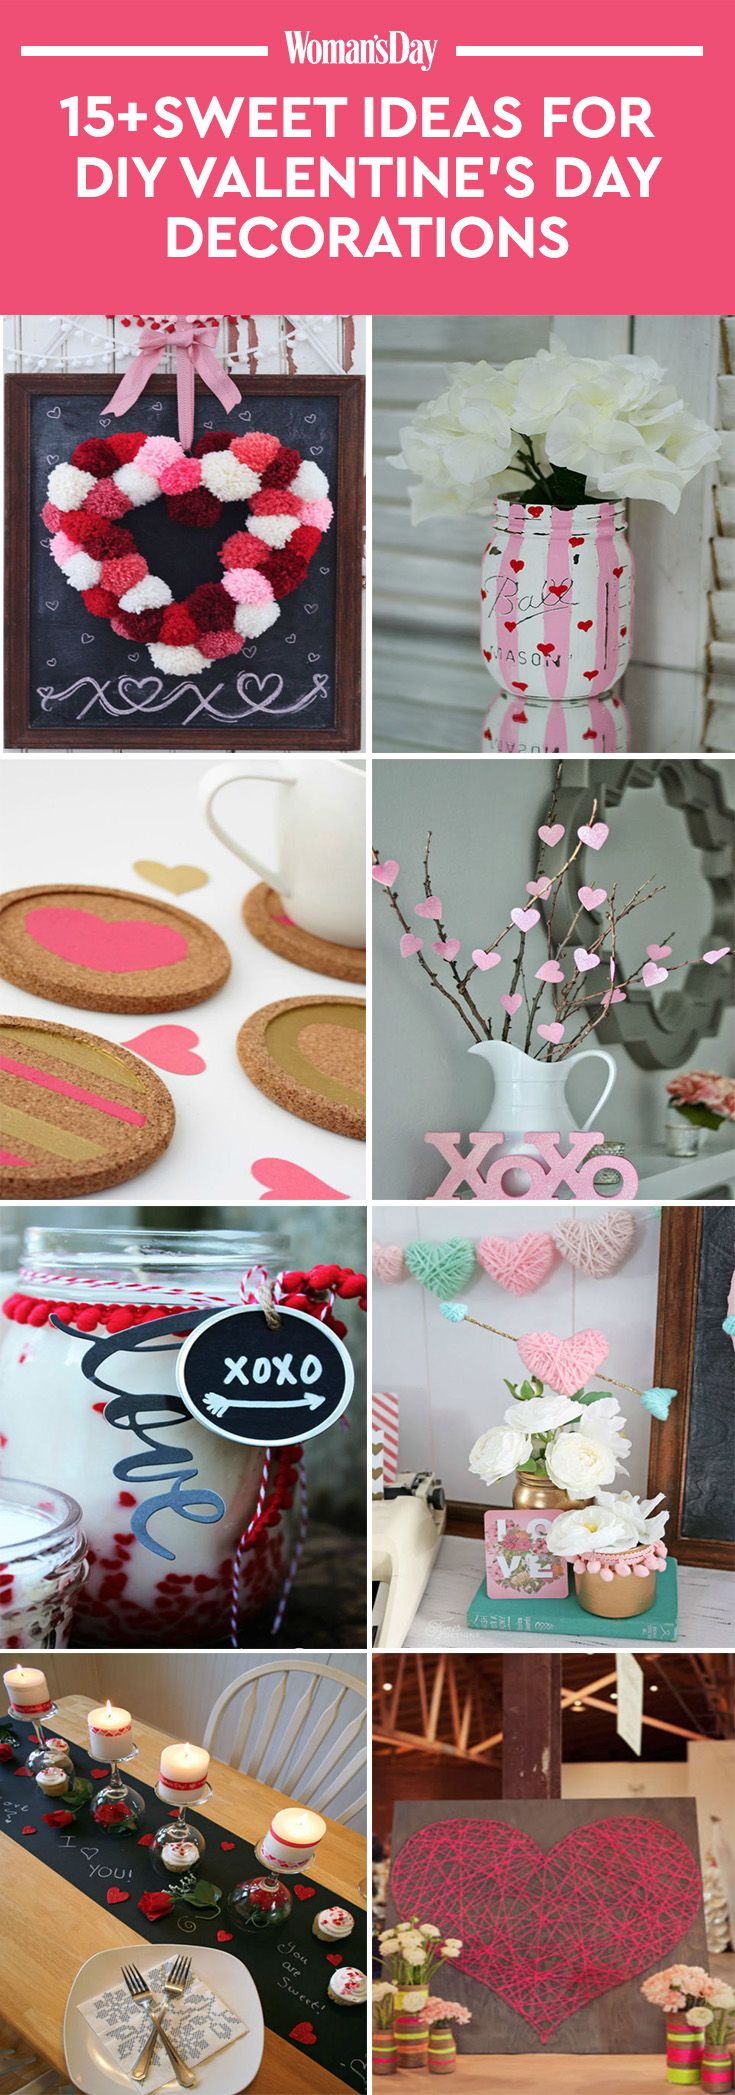 23 Diy Valentines Day Decorations Easy Valentines Day Decor Ideas